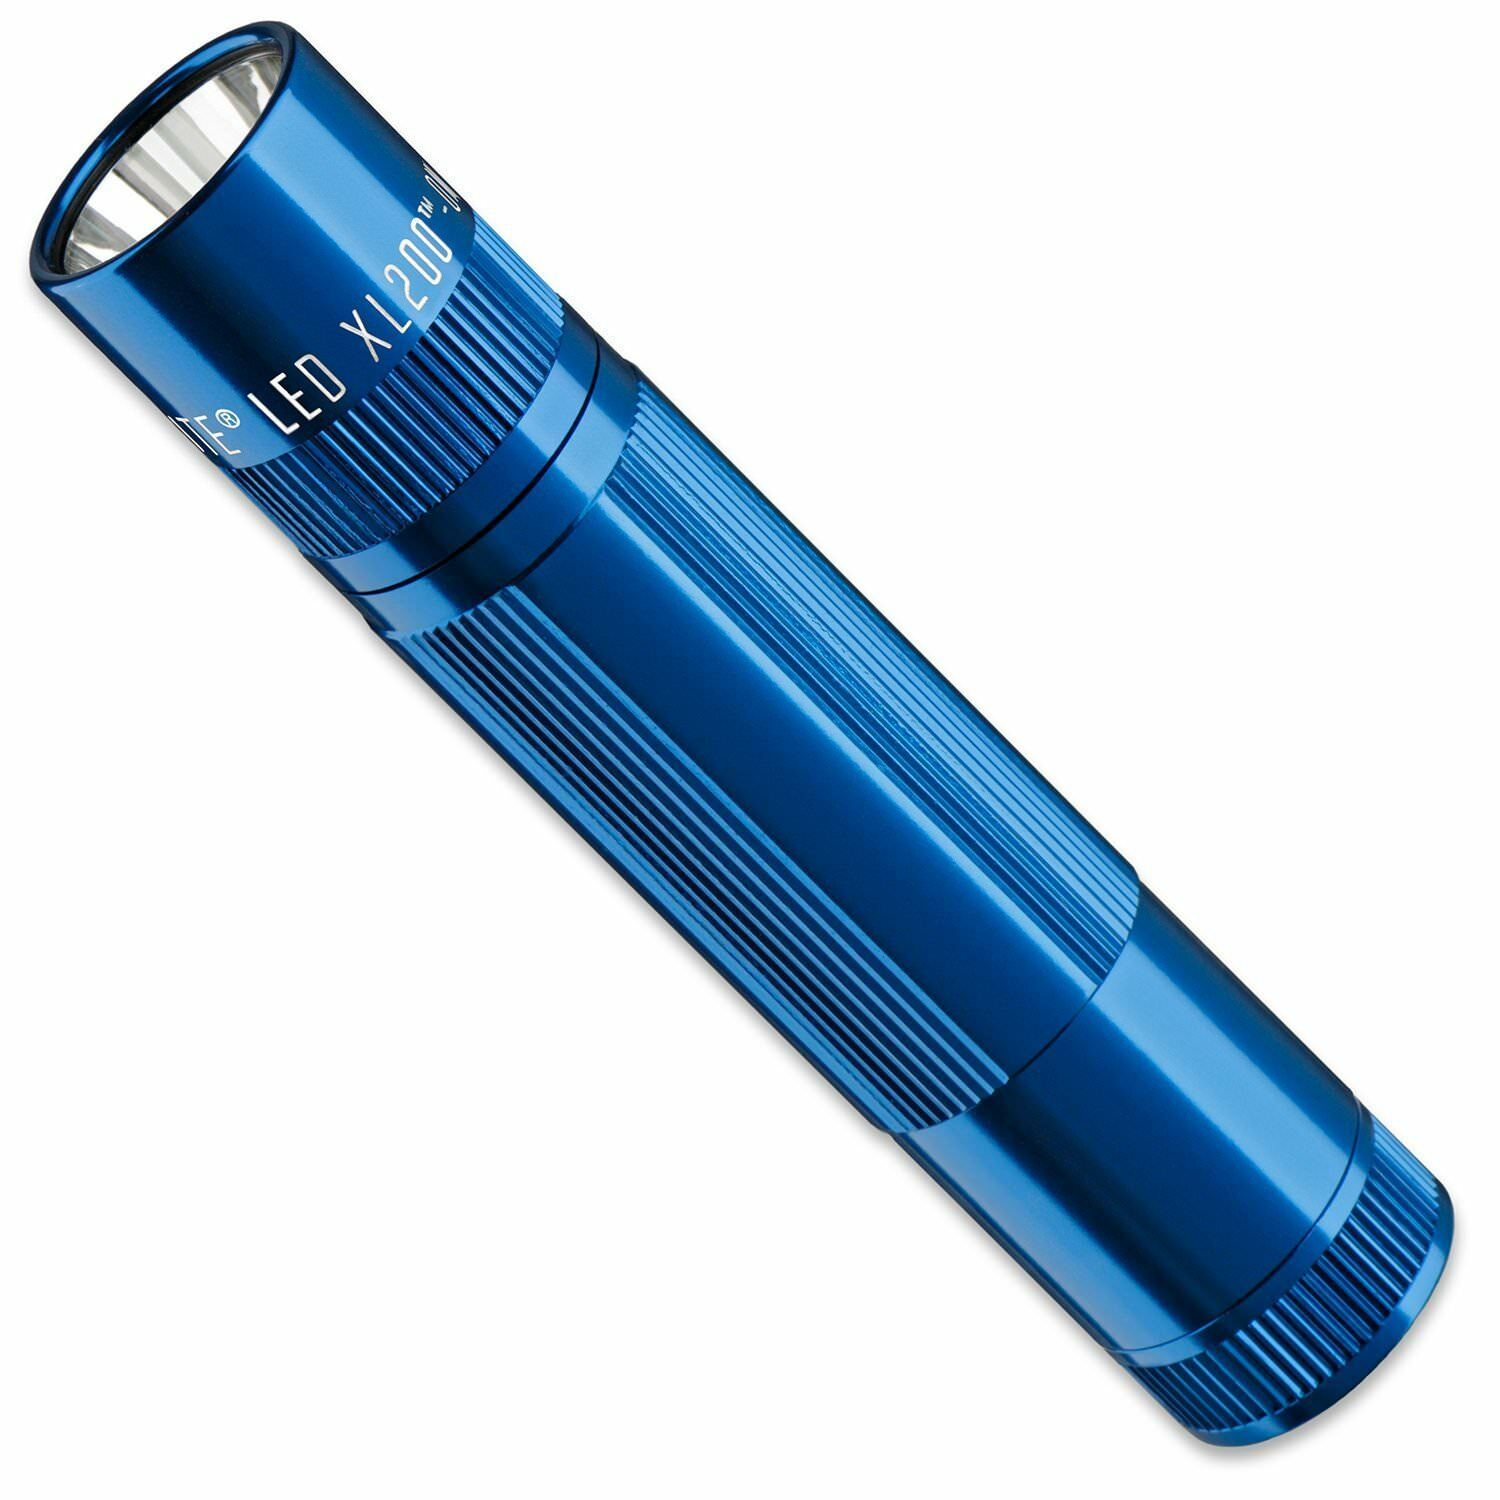 Maglite XL200S3116 LED Flashlight, XL200, 3-Cell, bluee